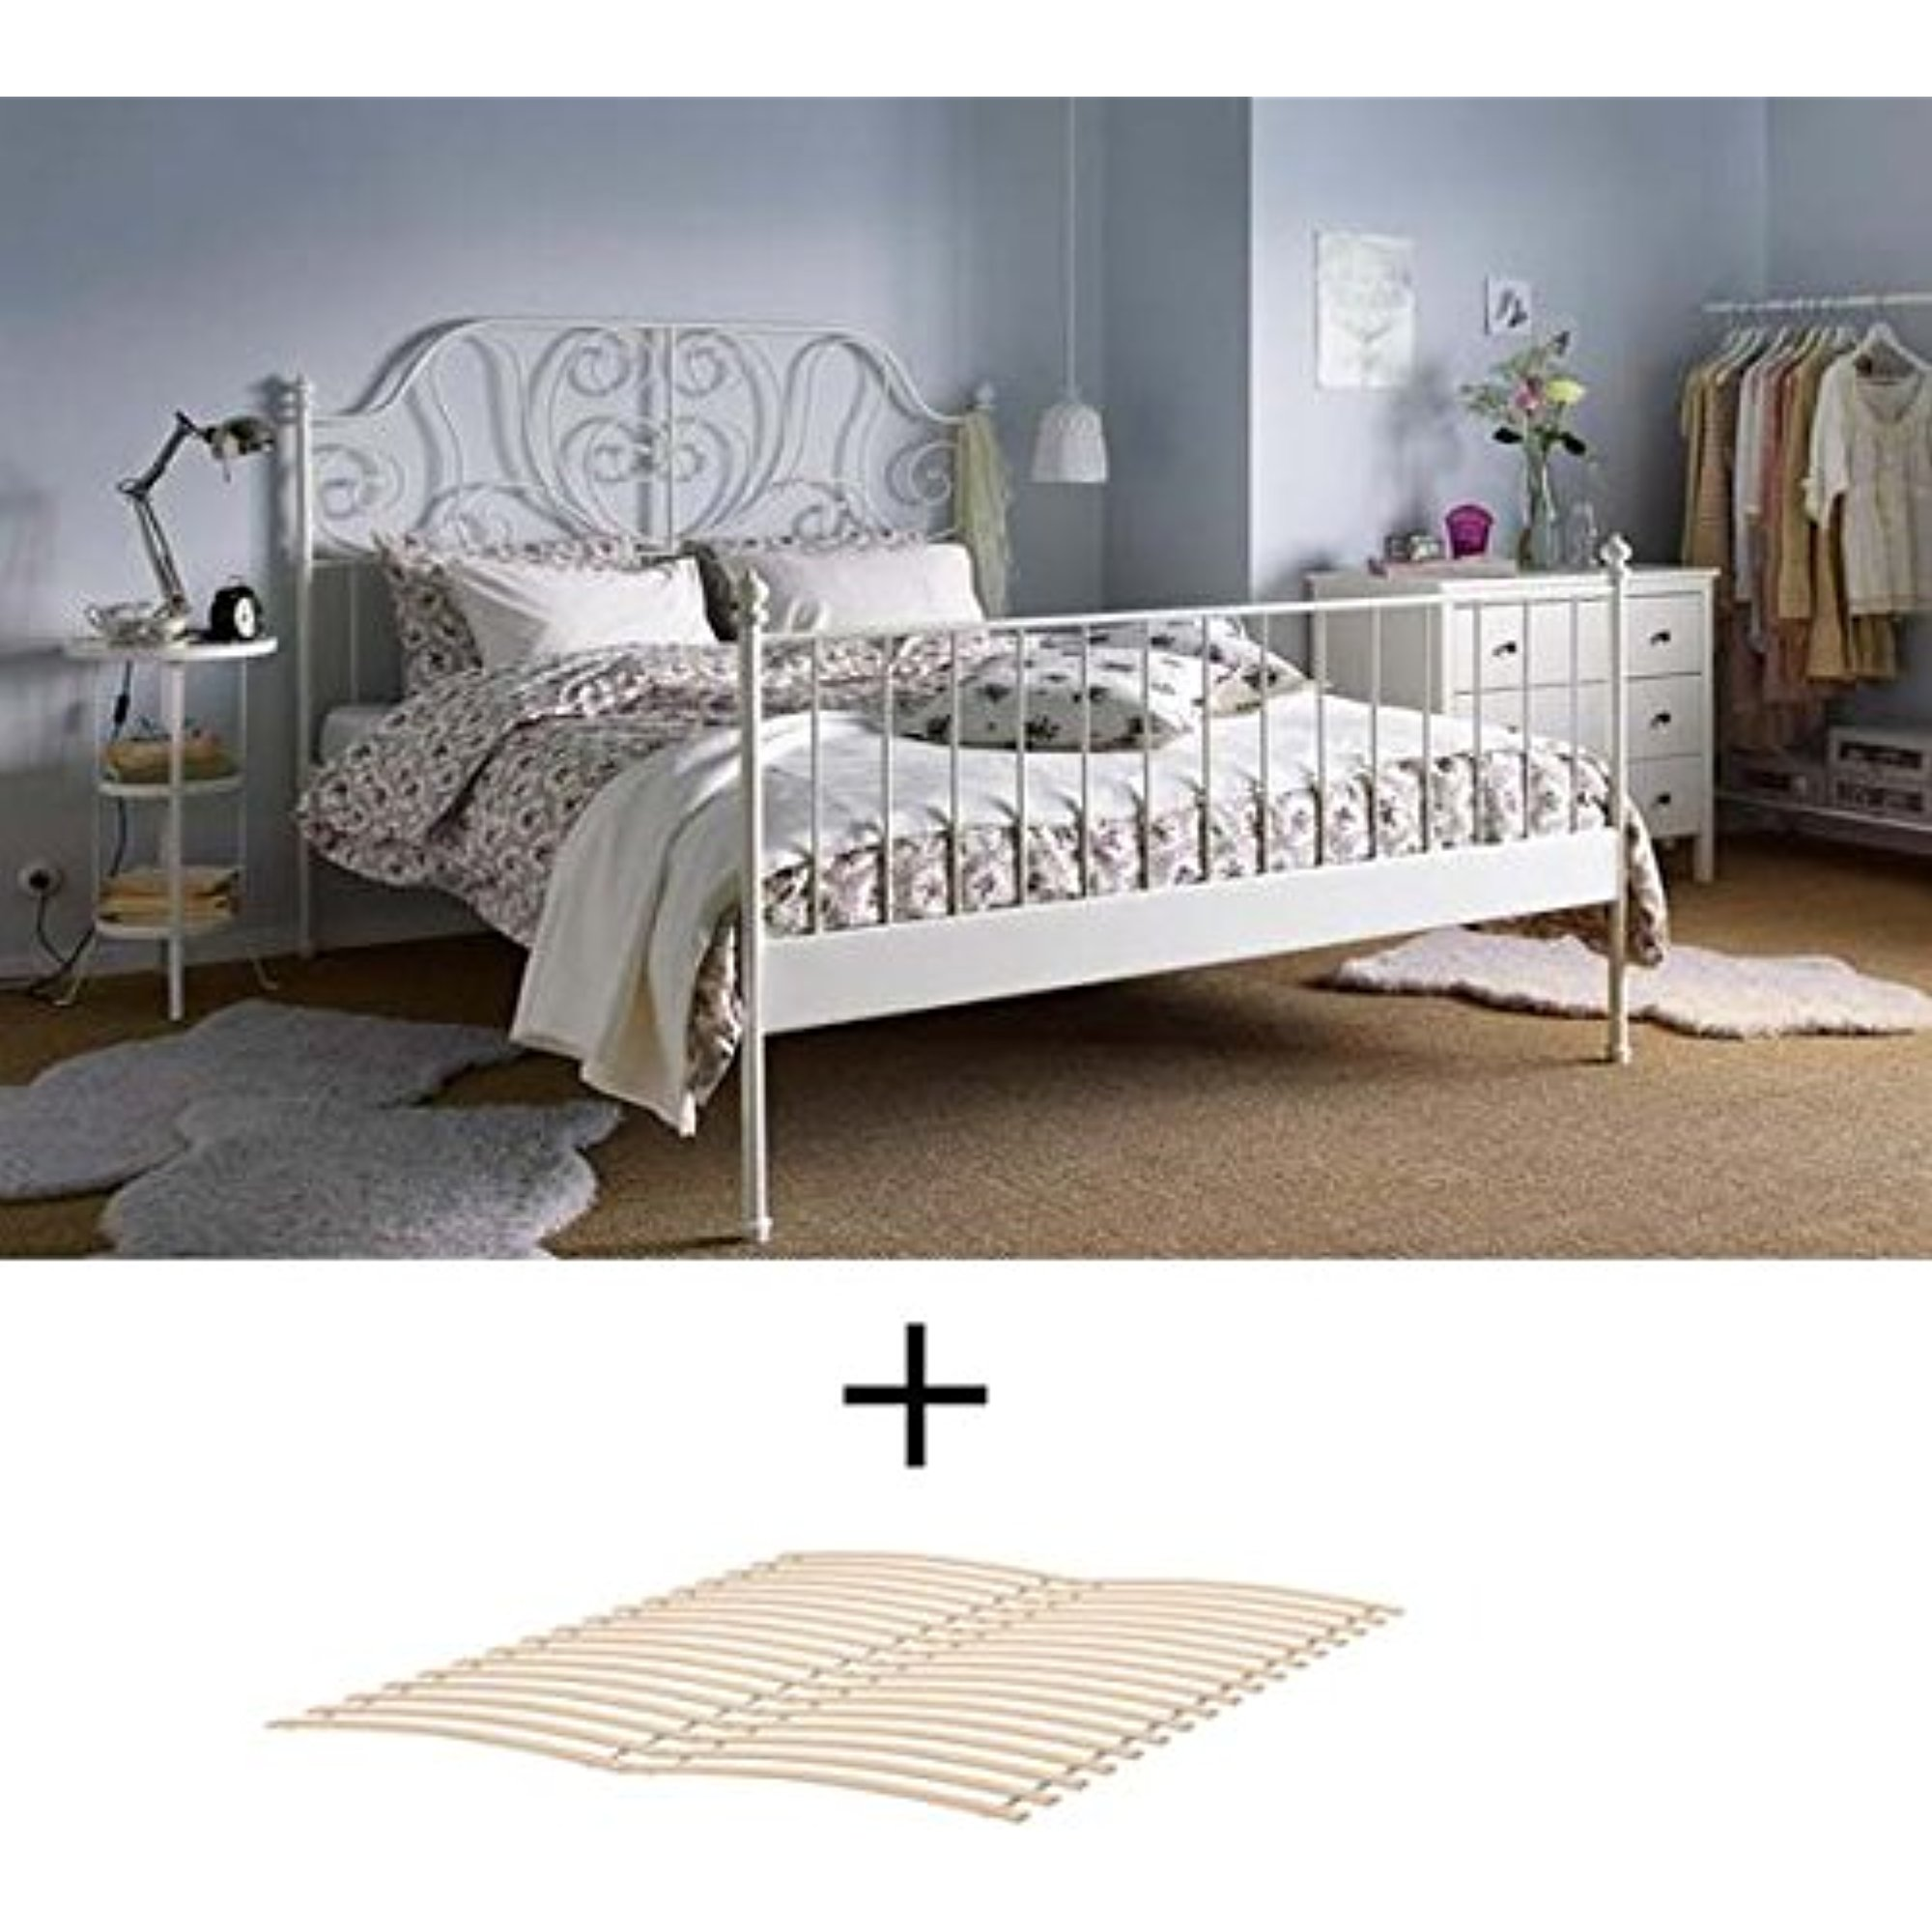 Ikea Full Size Bed Frame Ikea Full Size Metal Country Style Bed Frame With Slatted Base White